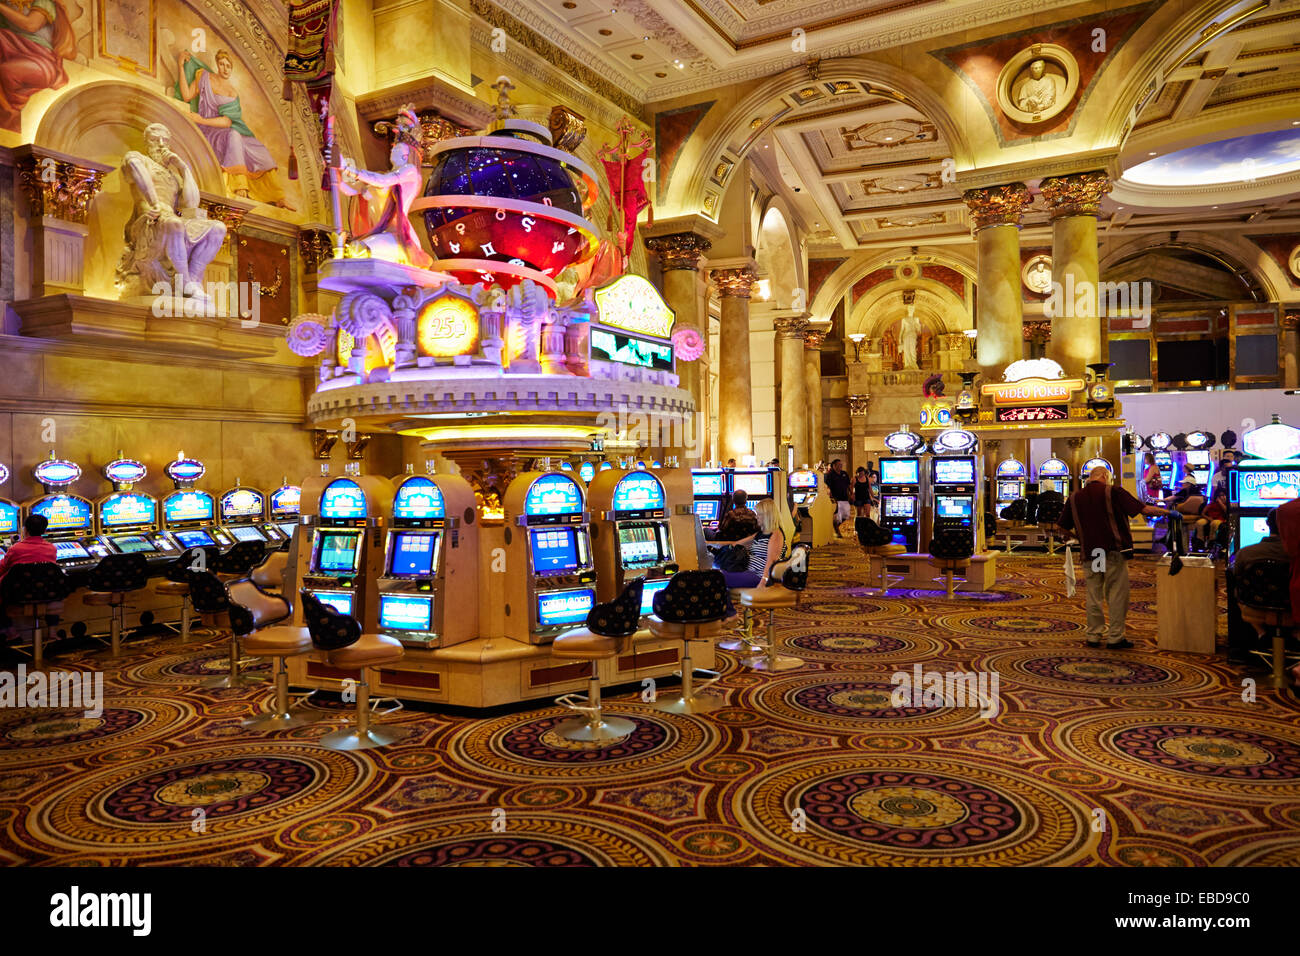 caesars palace online casino sizzling hot download